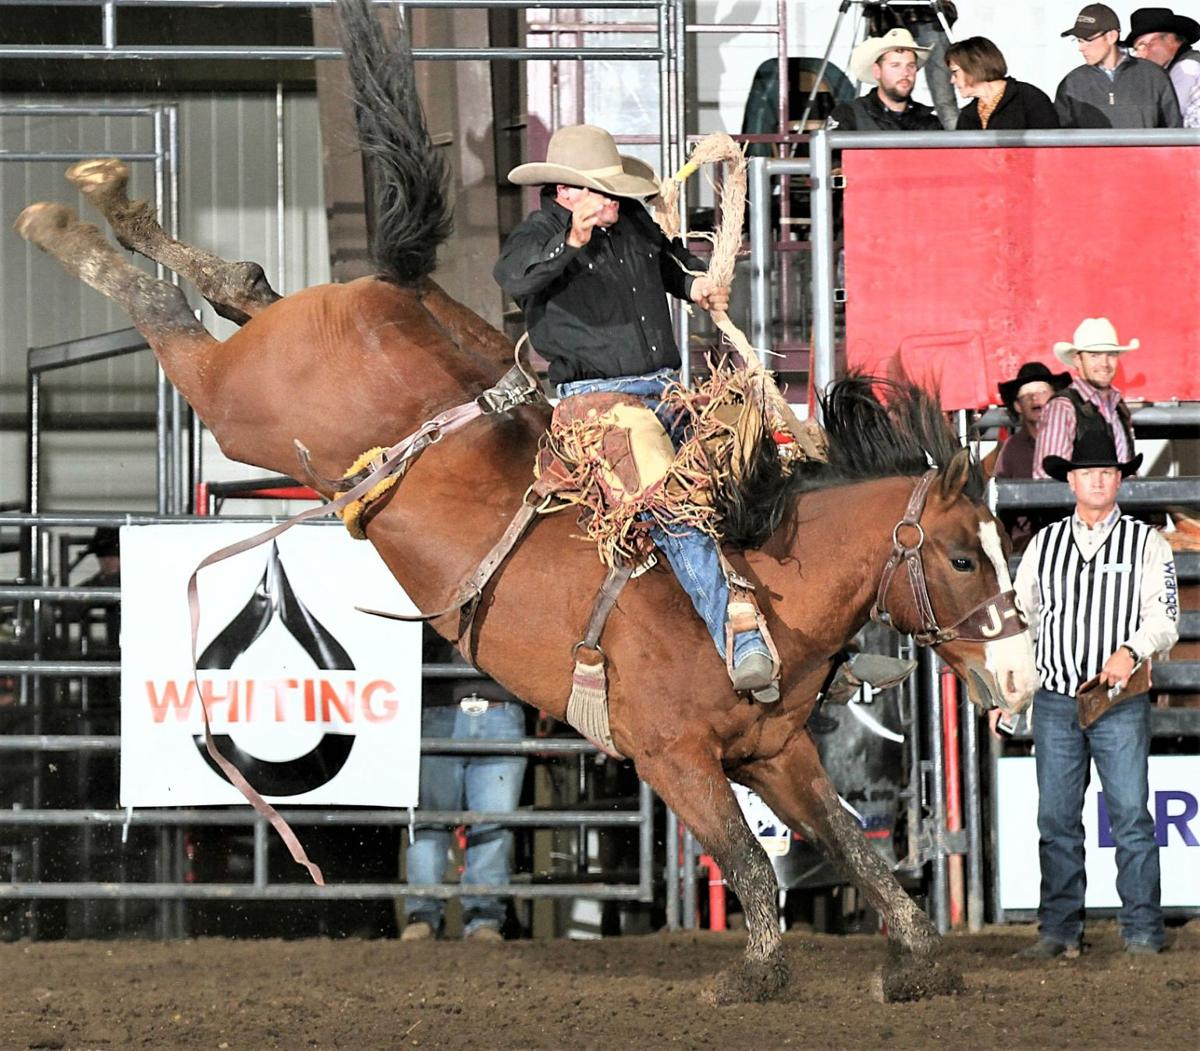 Local bucking horses, bulls selected for excellence in pro rodeo